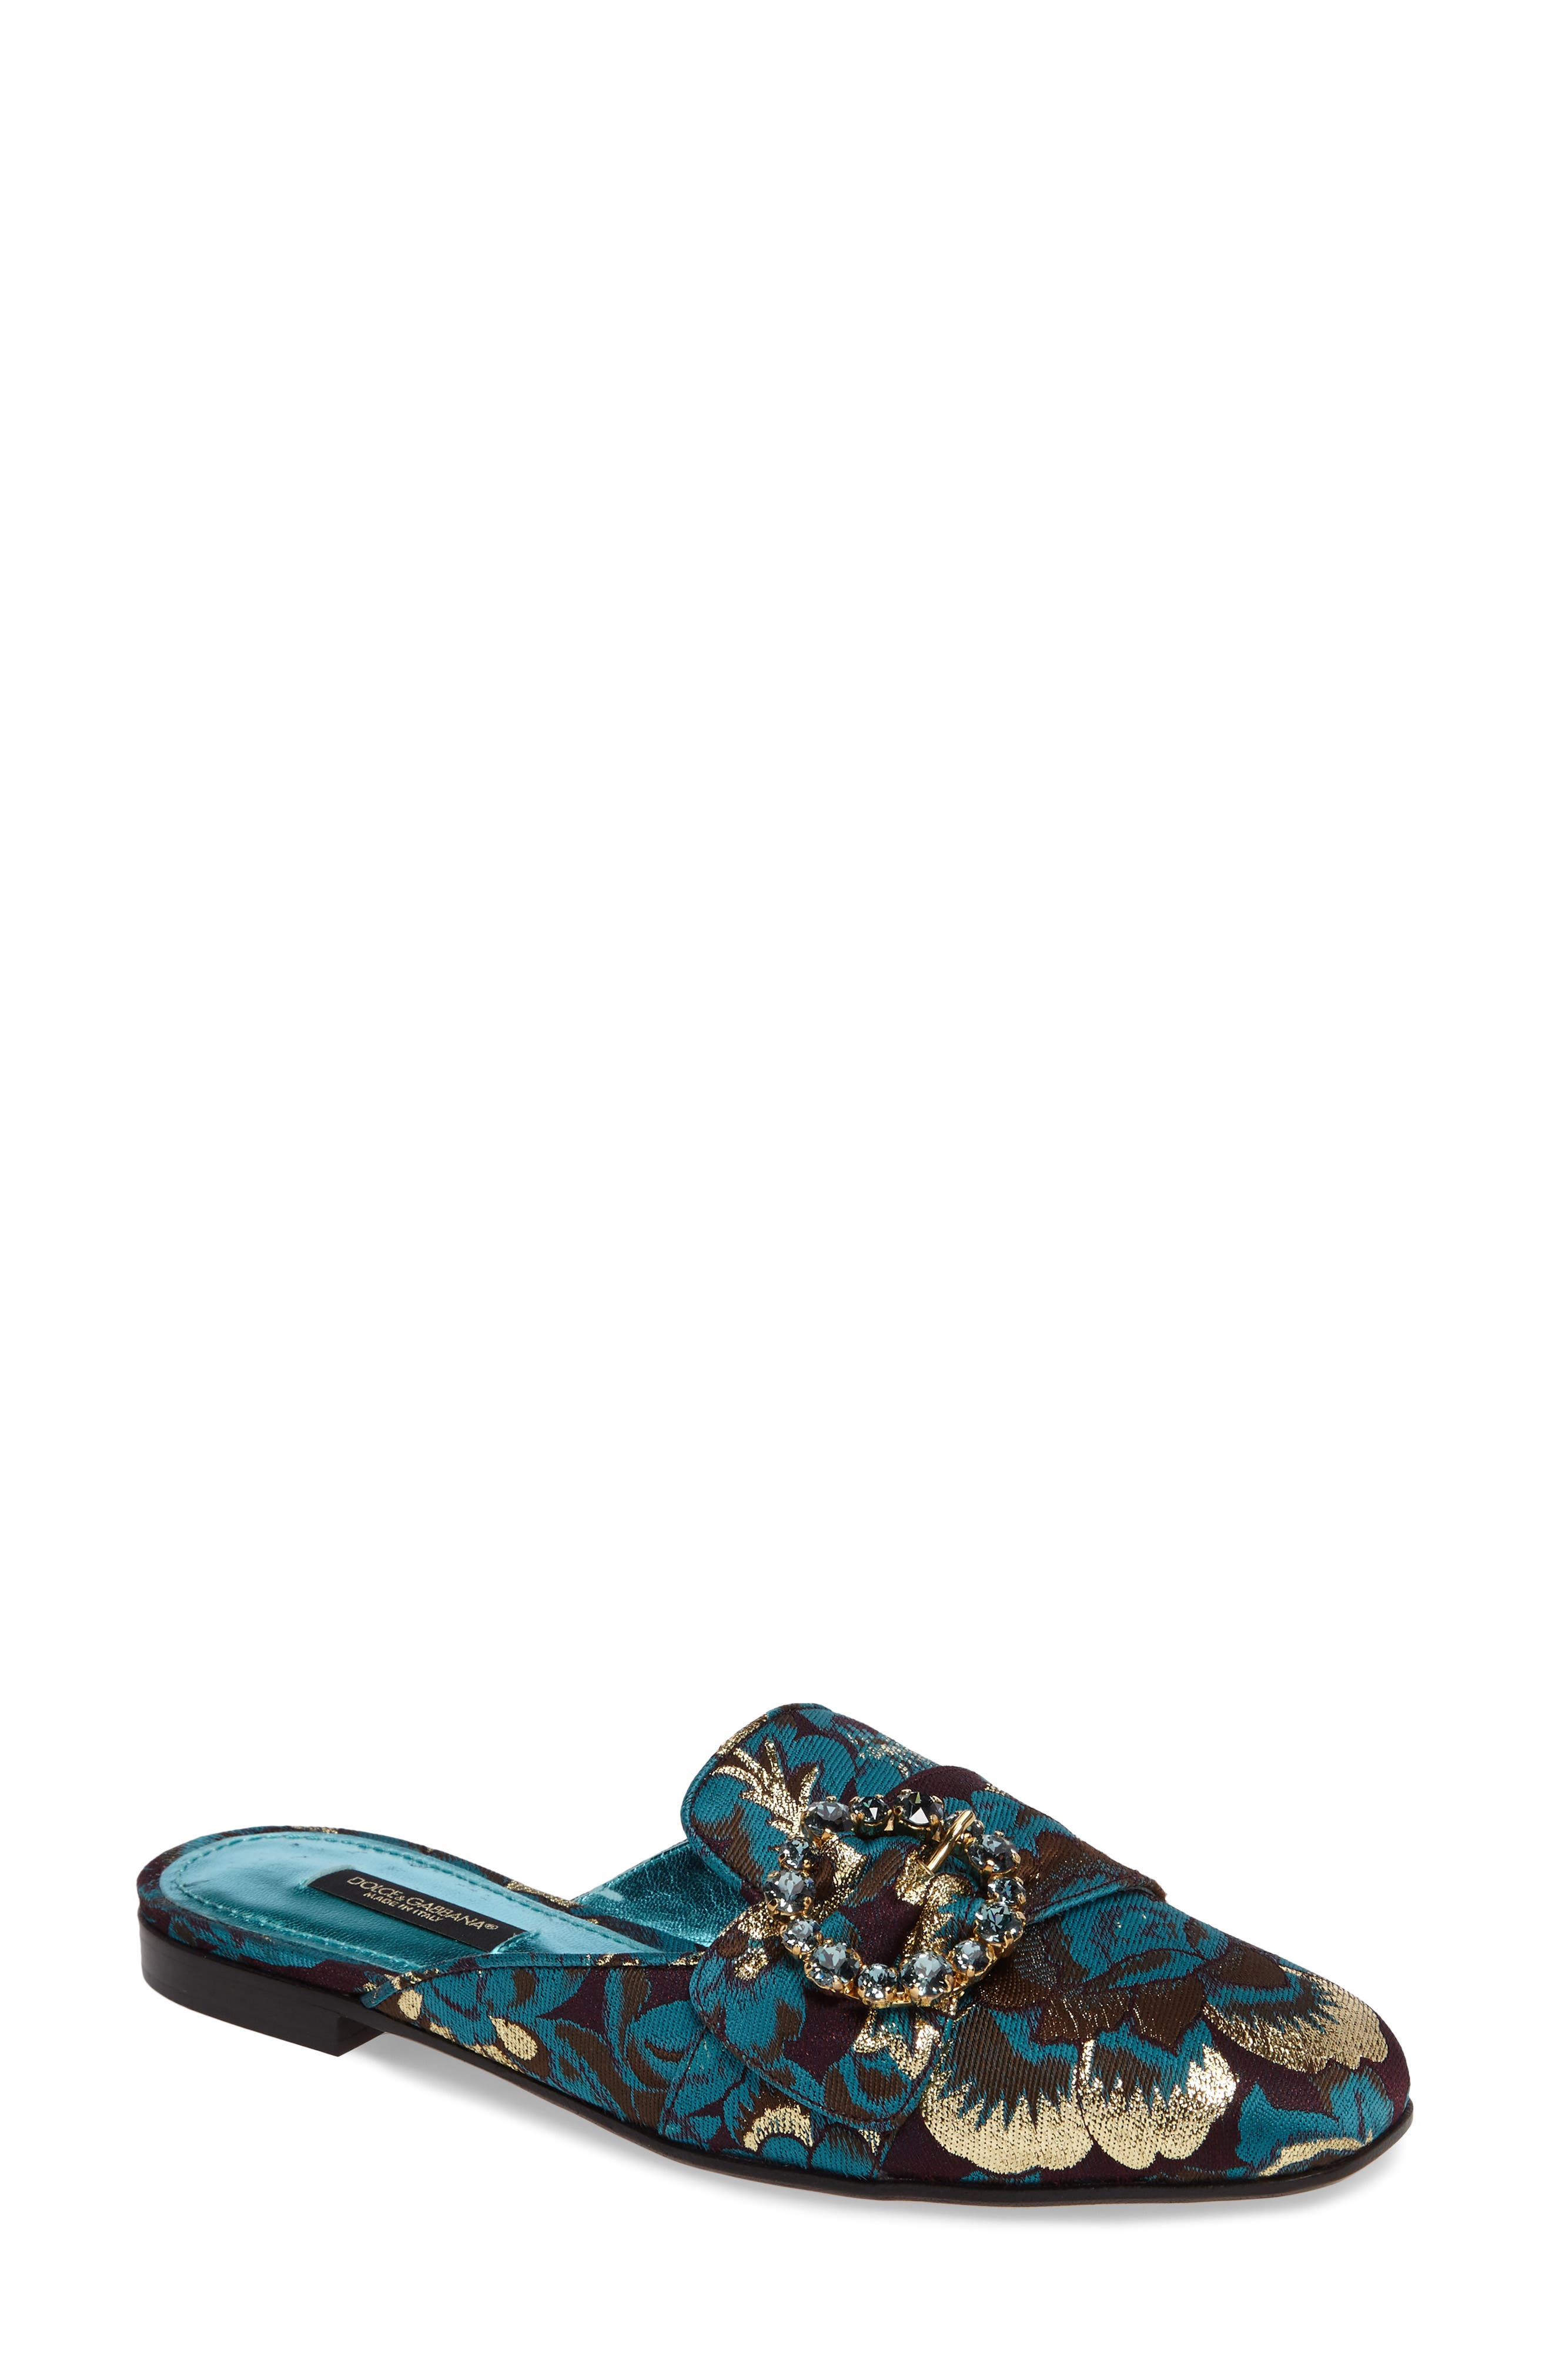 Dolce&Gabbana Embellished Backless Loafer (Women)